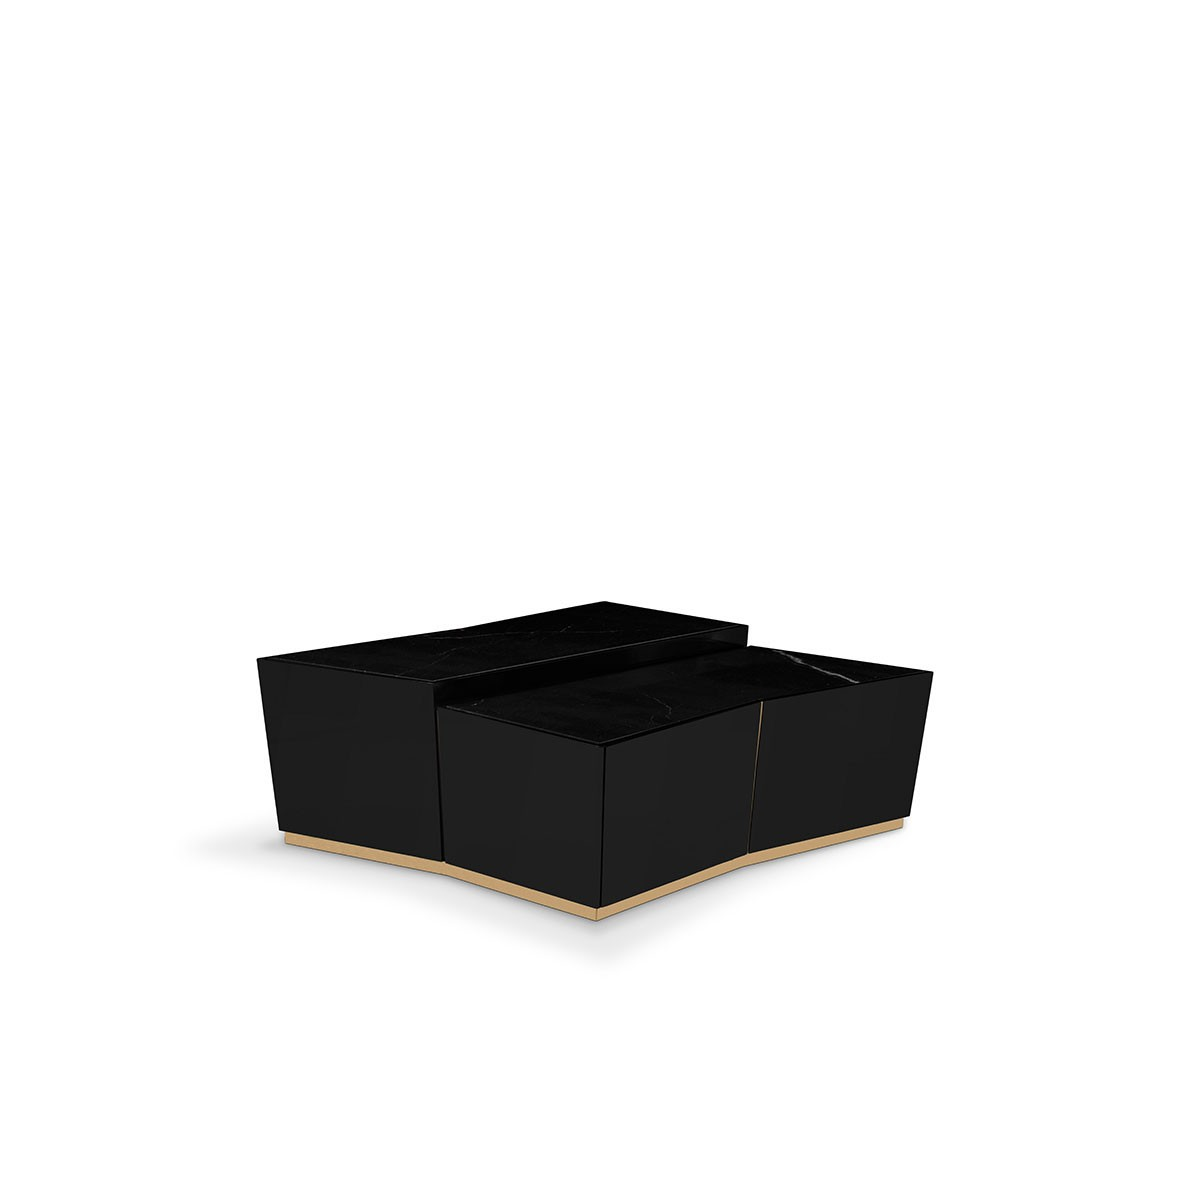 Top Contemporary Coffee Tables contemporary coffee tables Top Contemporary Coffee Tables beyond2